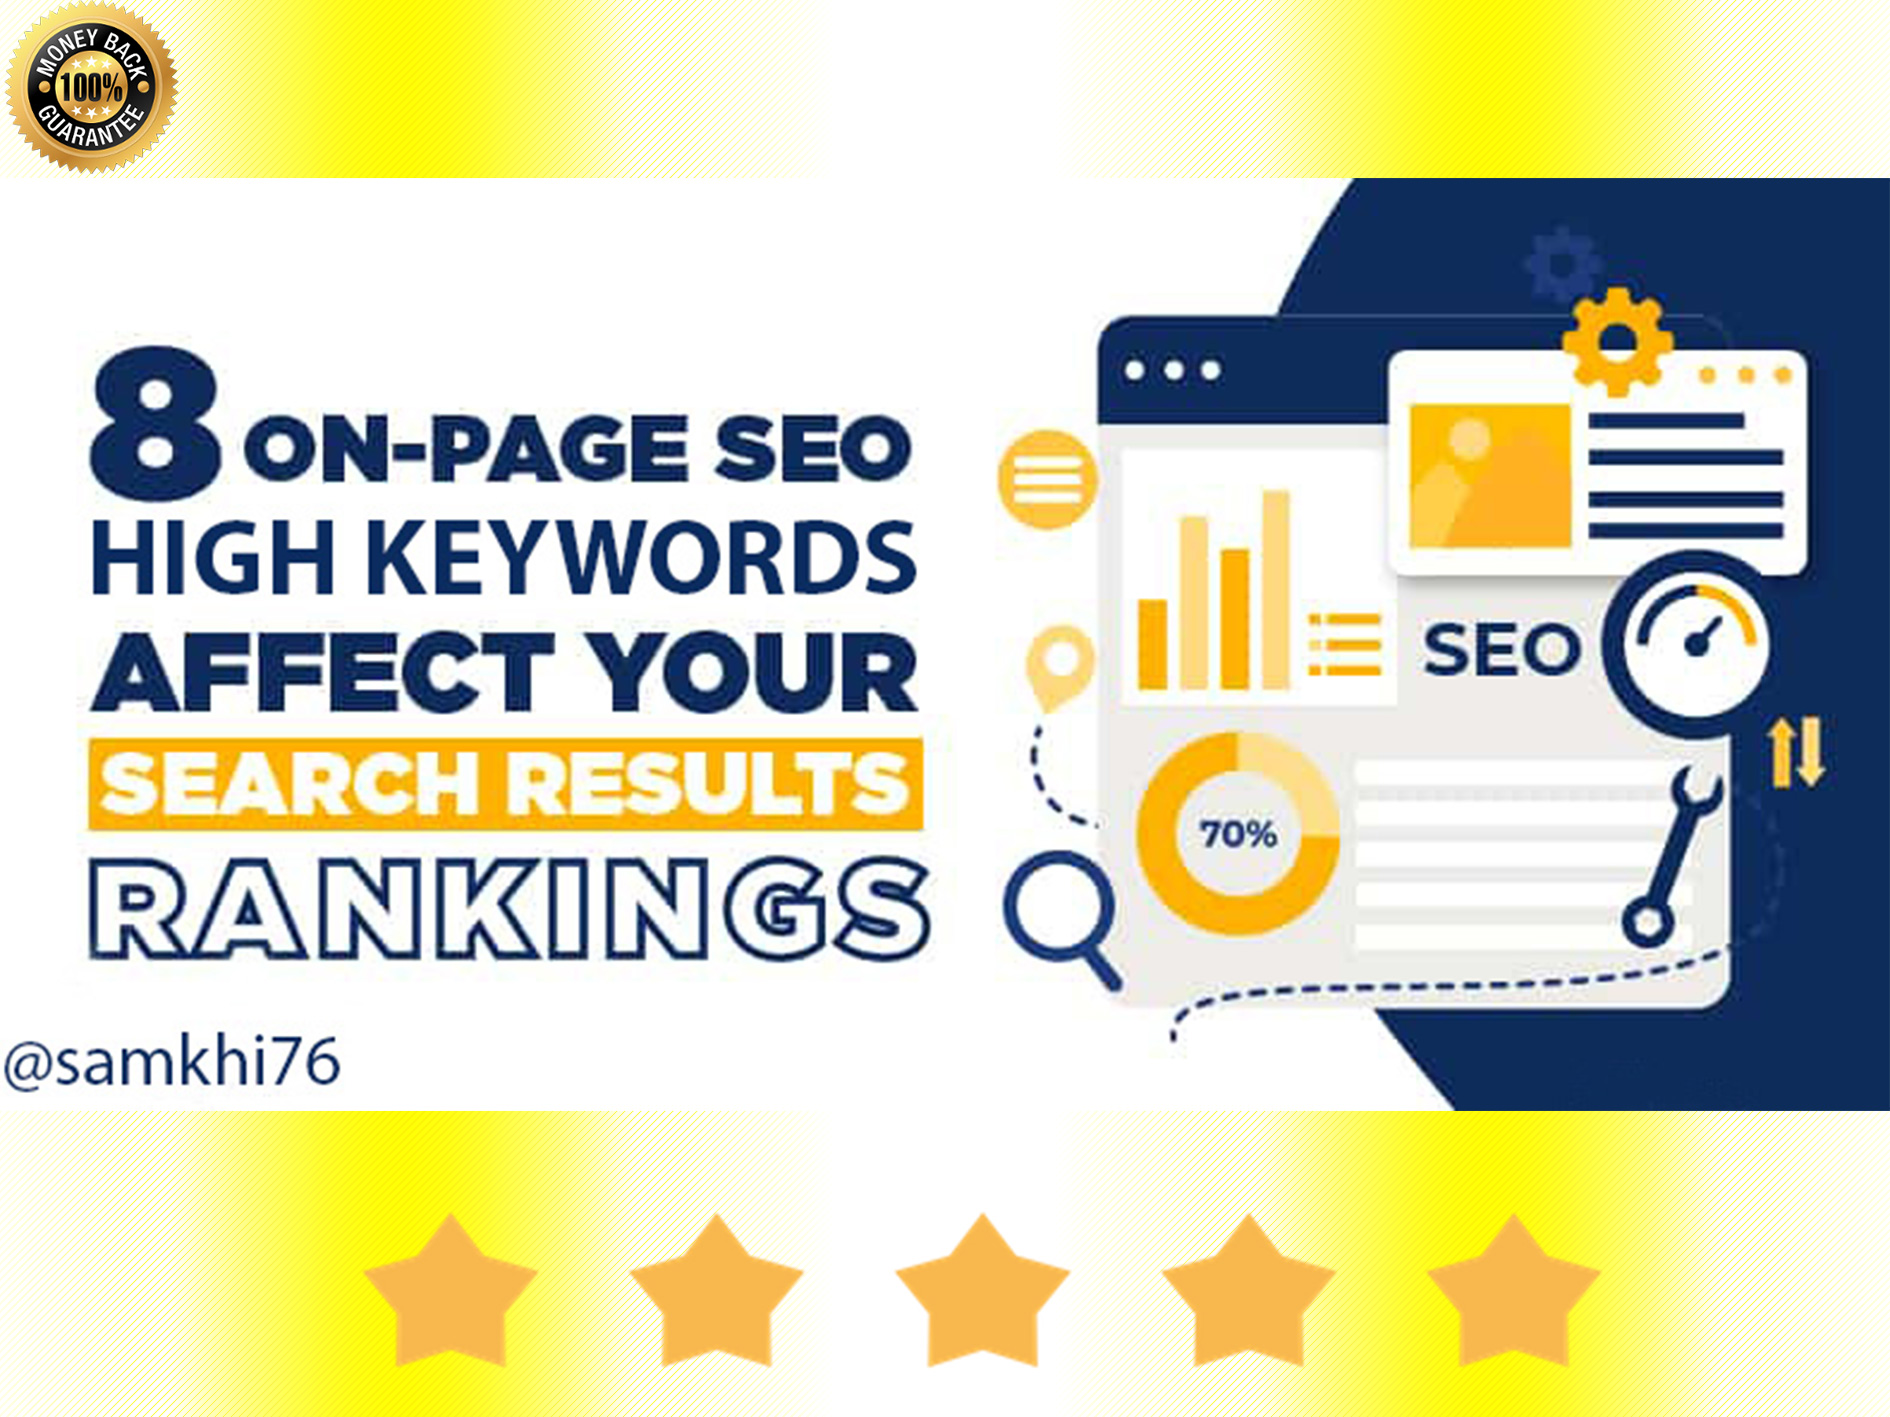 i will research high keywords with low competition